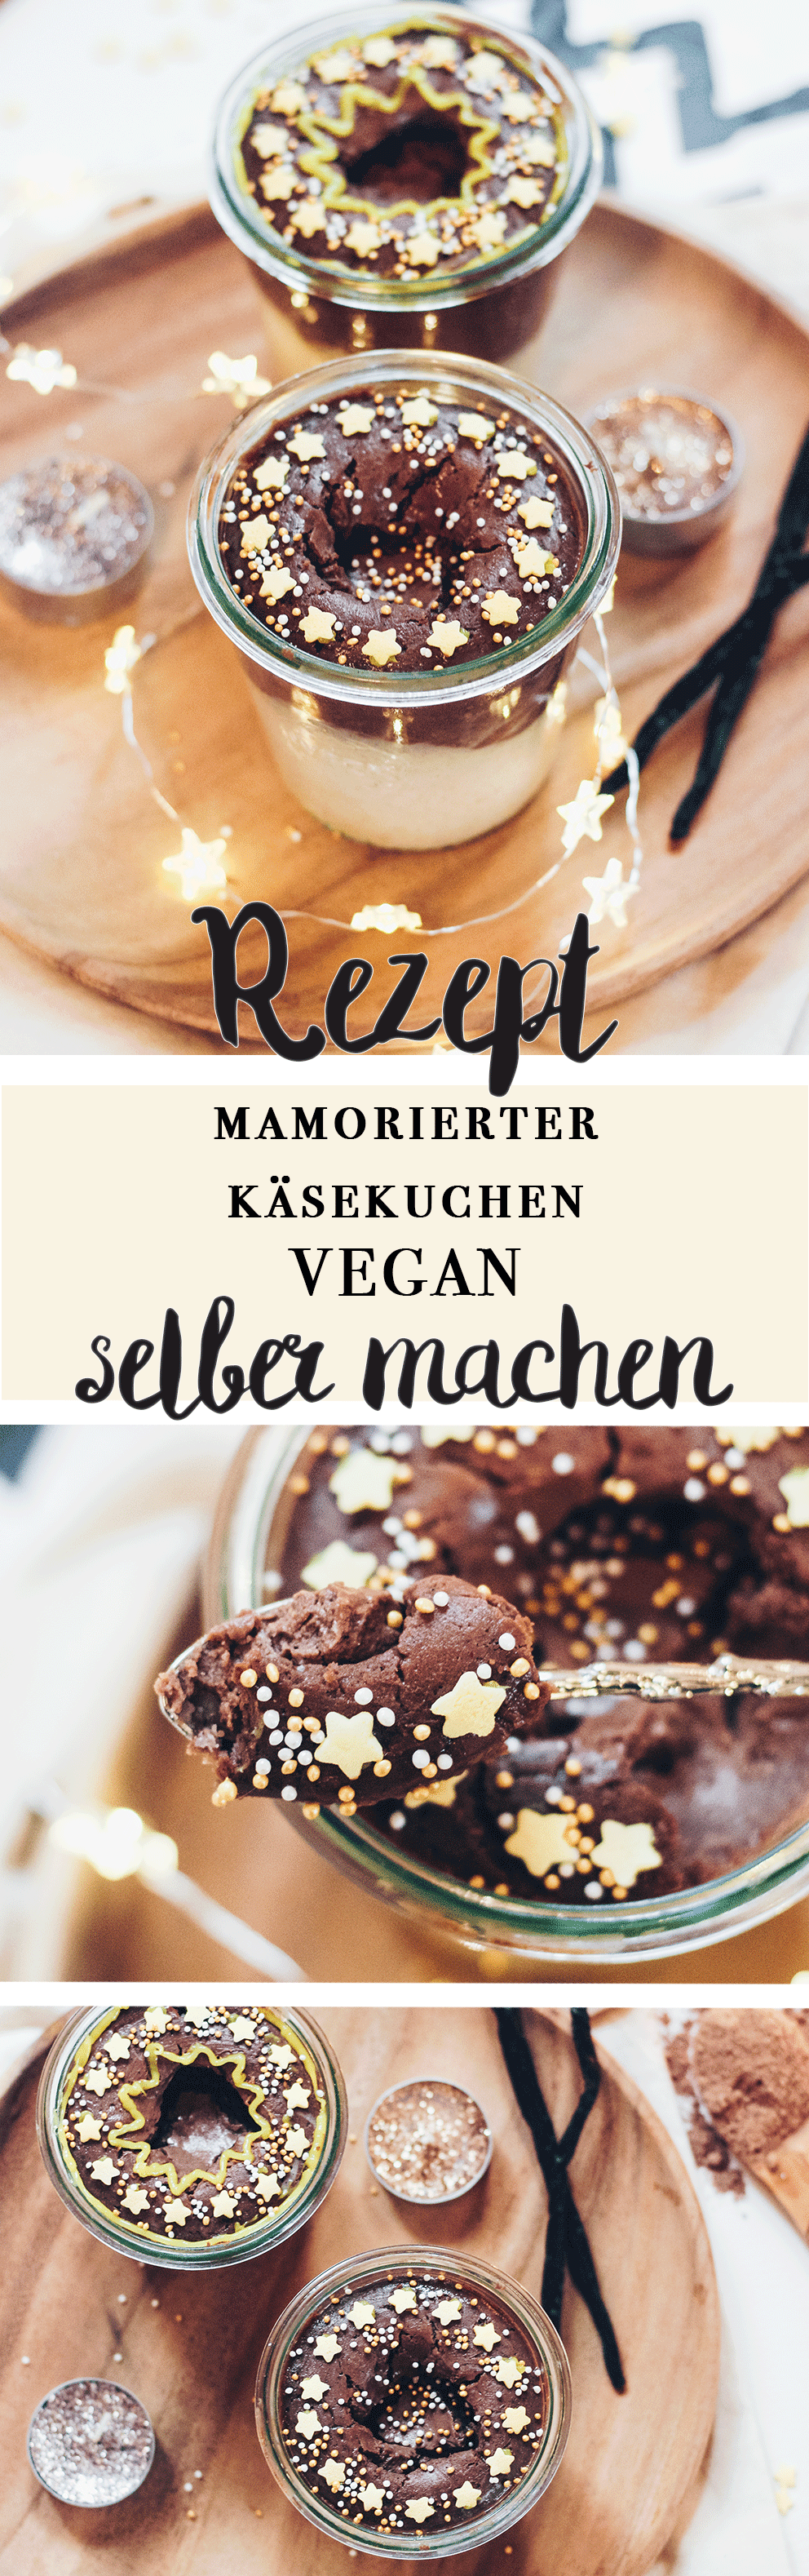 marmorierter k sekuchen im glas veganes dessert rezept. Black Bedroom Furniture Sets. Home Design Ideas